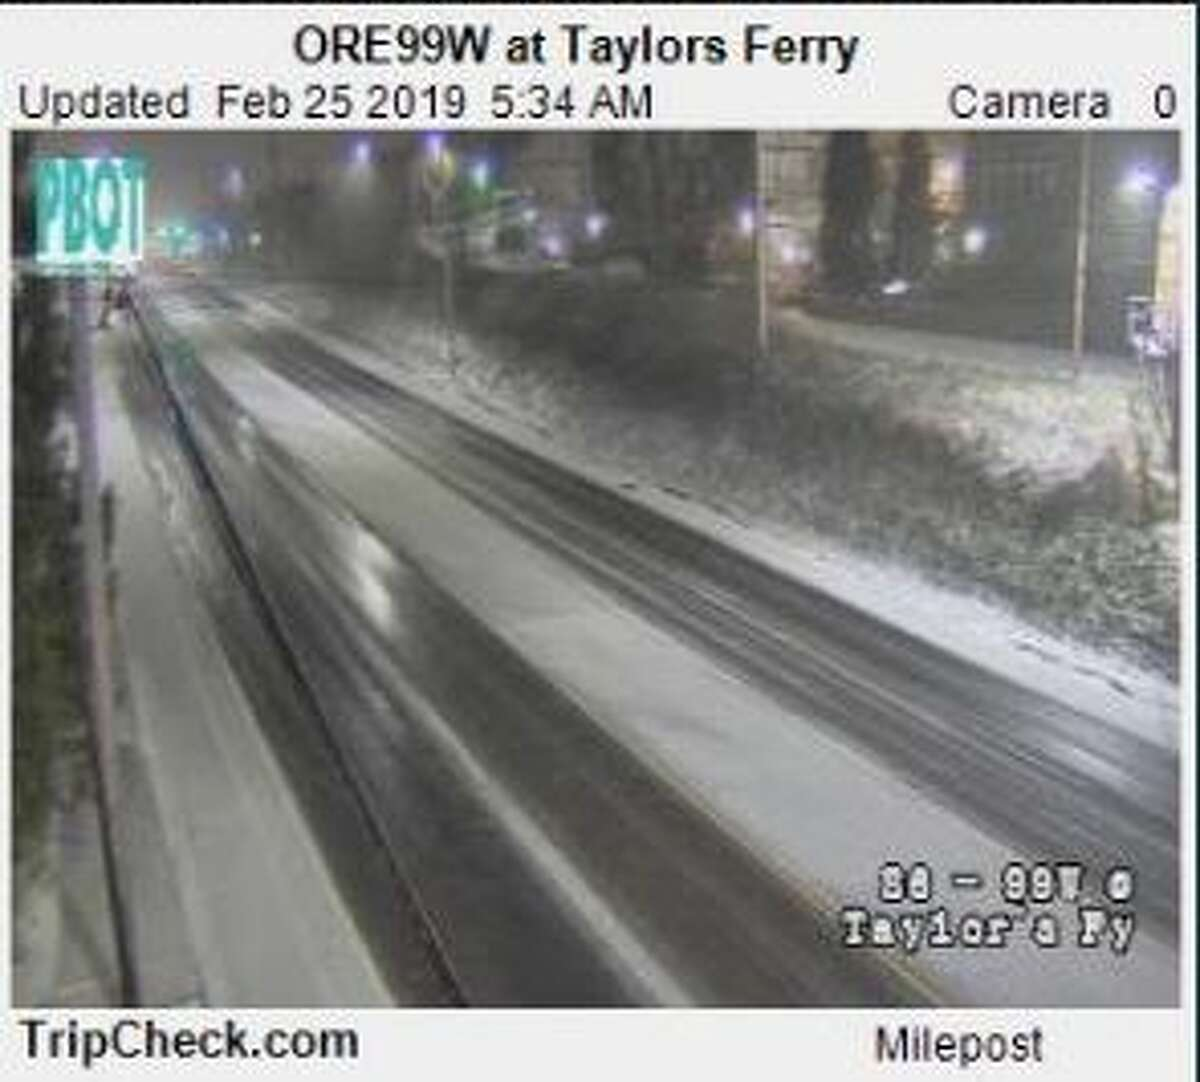 An Oregon Department of Transportation camera shows snow on the roads.